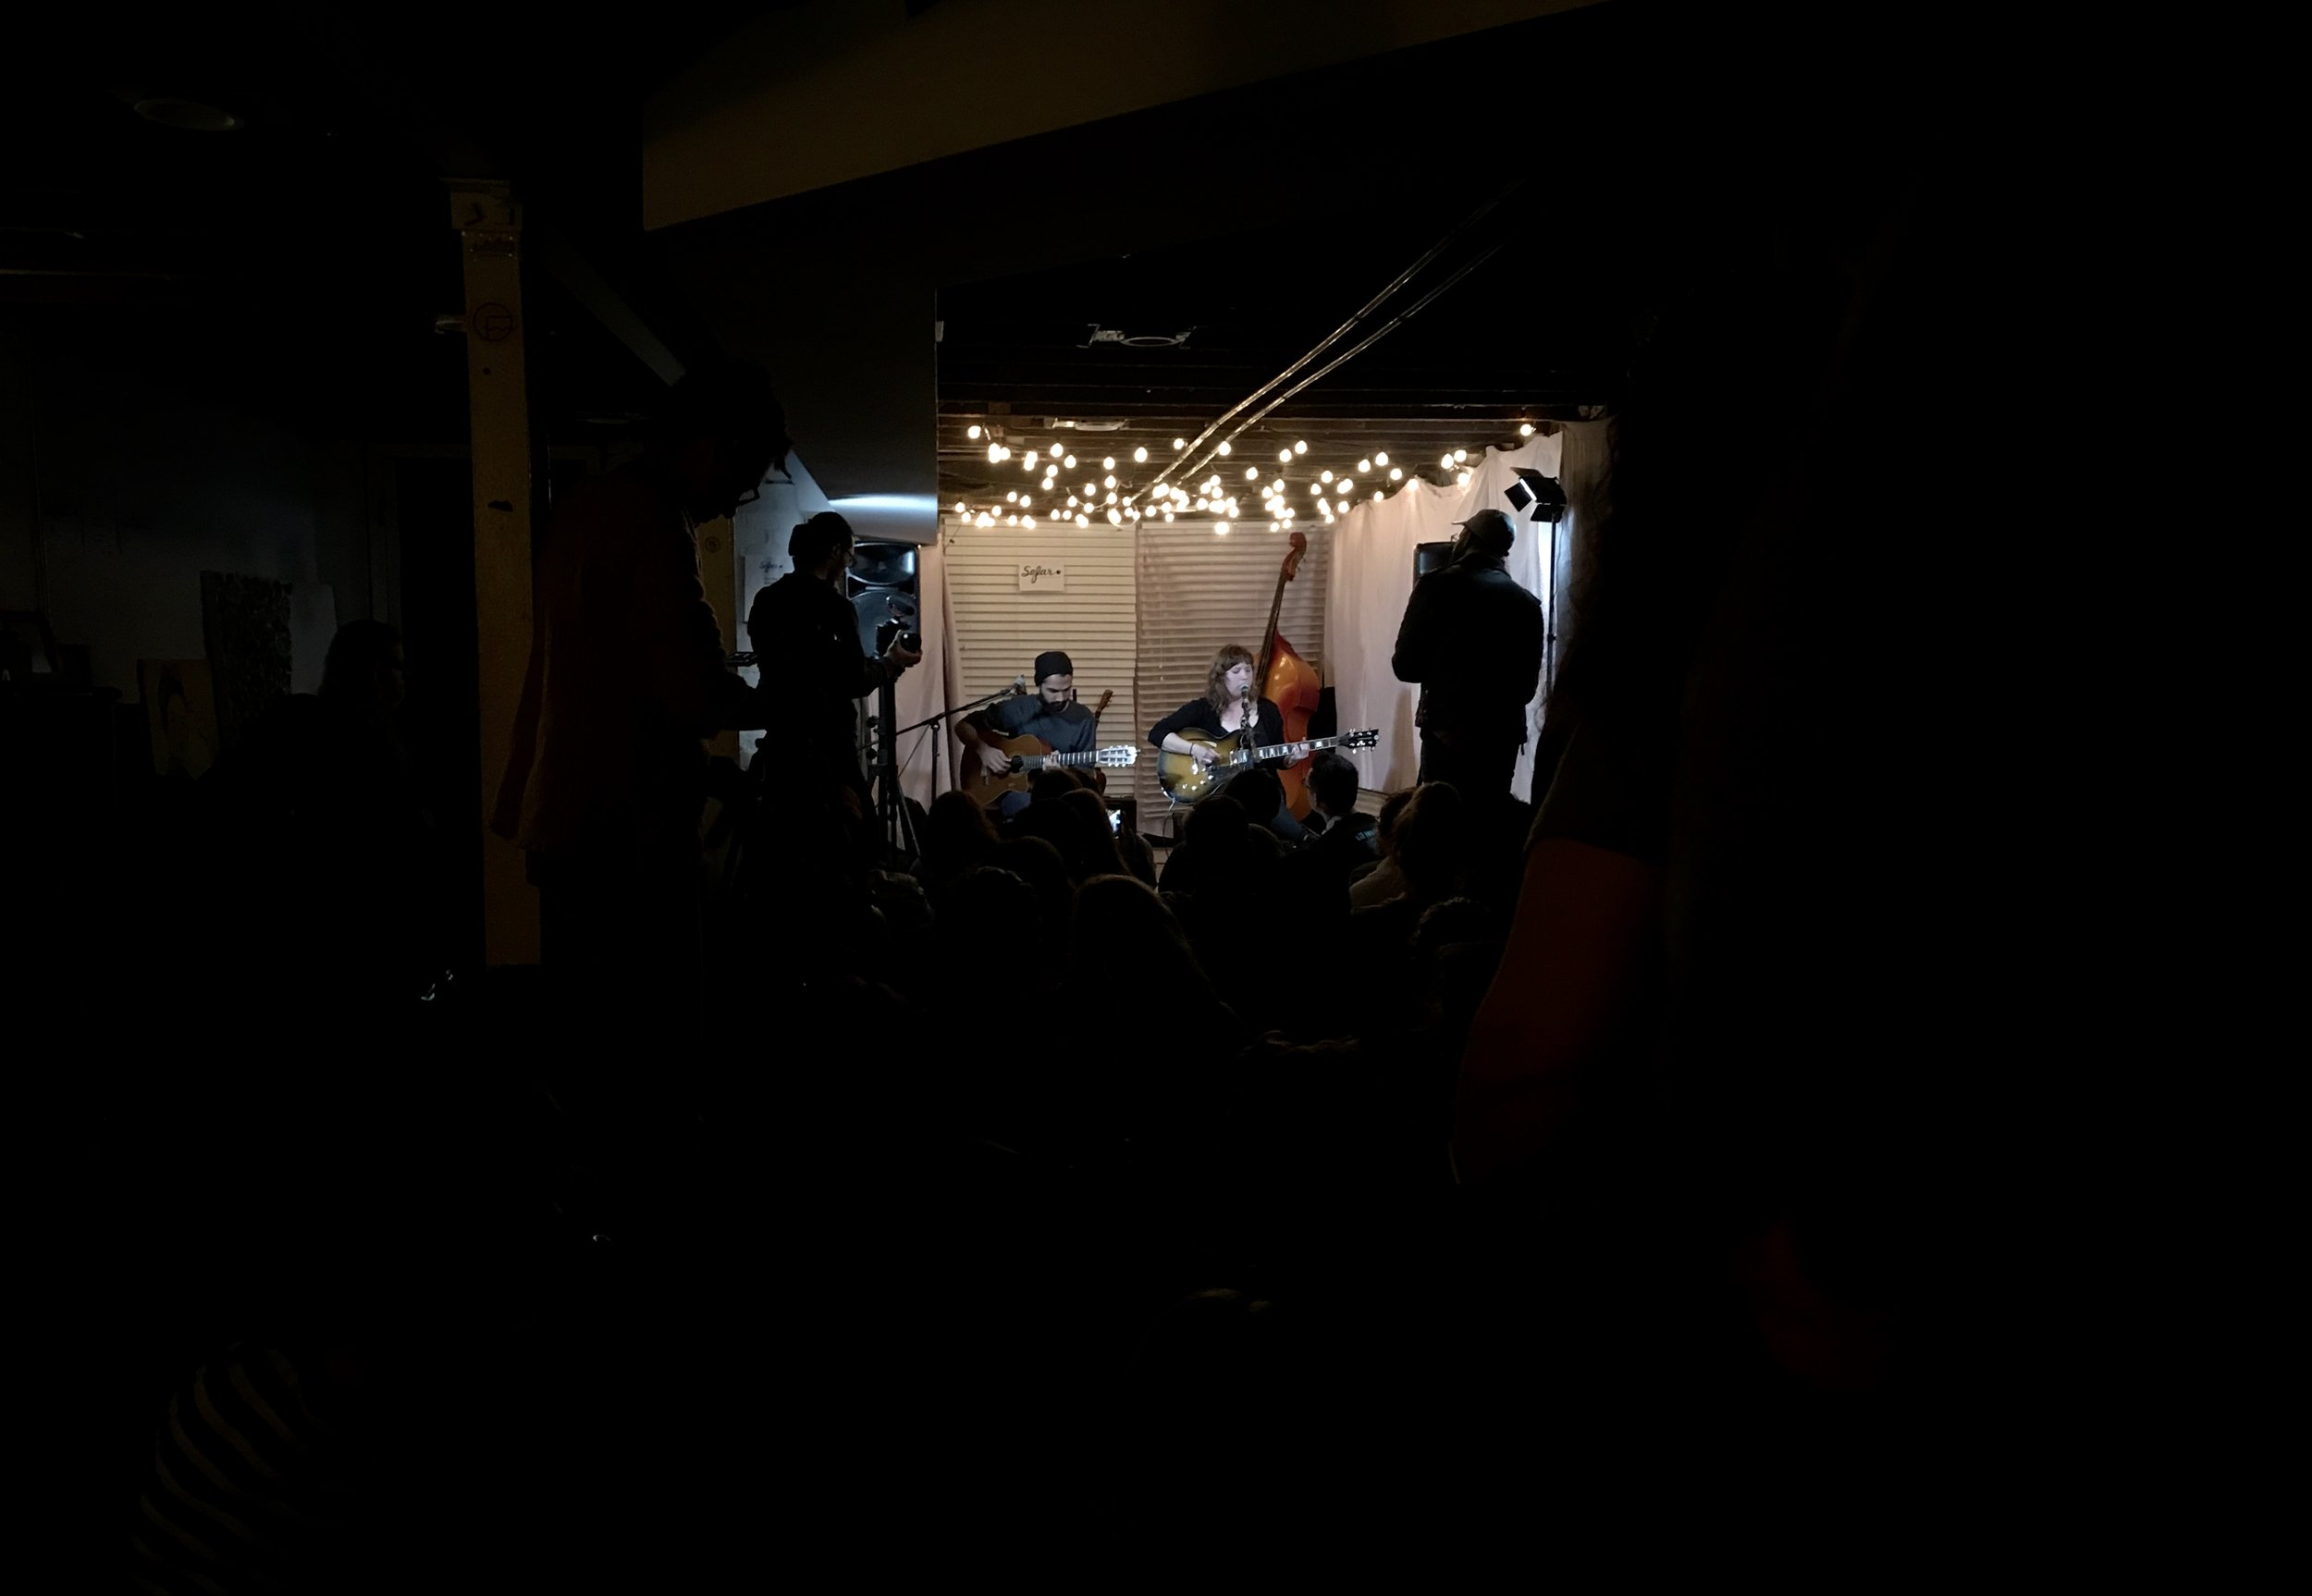 Pittsburgh native band Seaoffs performing in a basement for SoFar DC. Shot on my iPhone7.